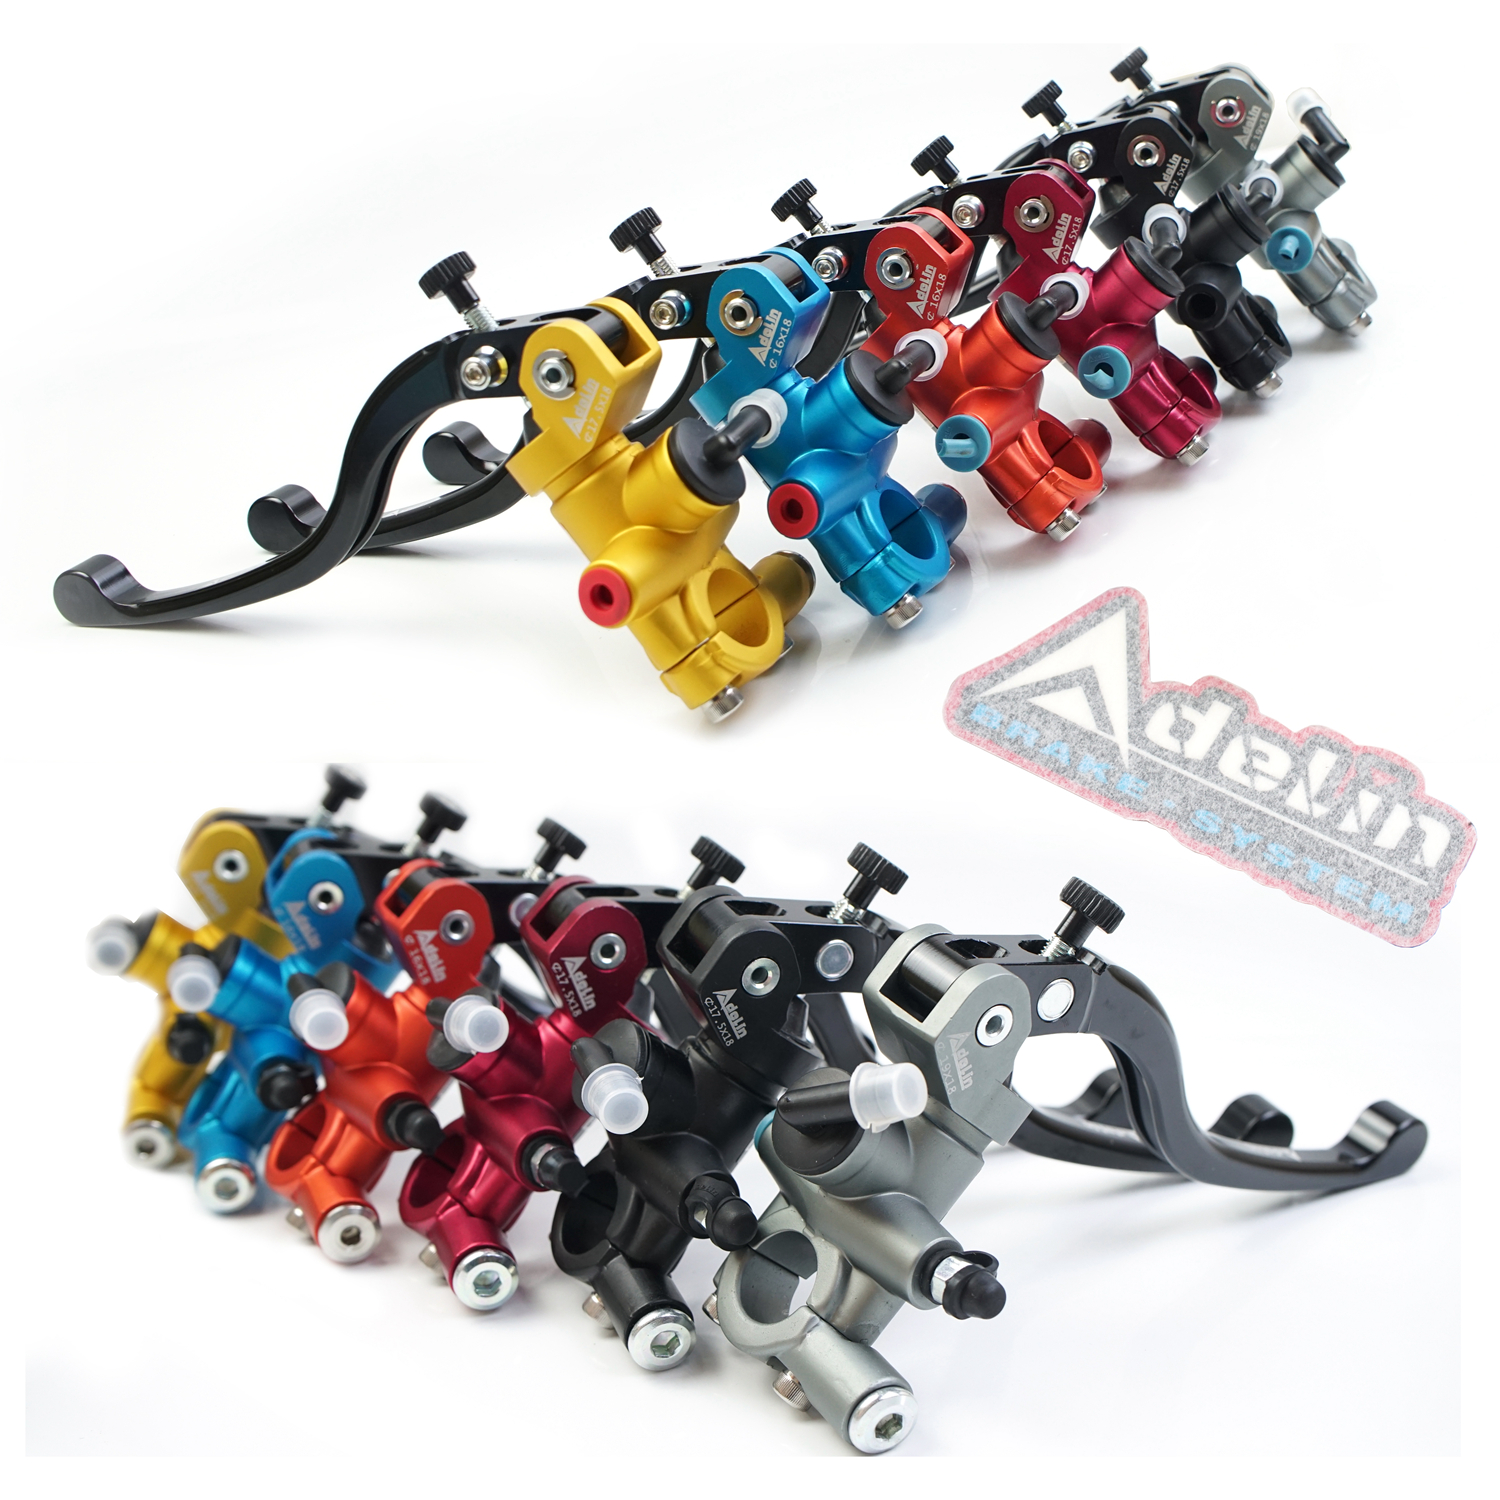 "Moto Radial Mounting Brake Clutch Lever Hydraulic 7/8"" DOT for Yamaha R6 Z1000 MT07 MT09 R3 Kawasaki Z750 Z900 ER6N NINJA CBR600